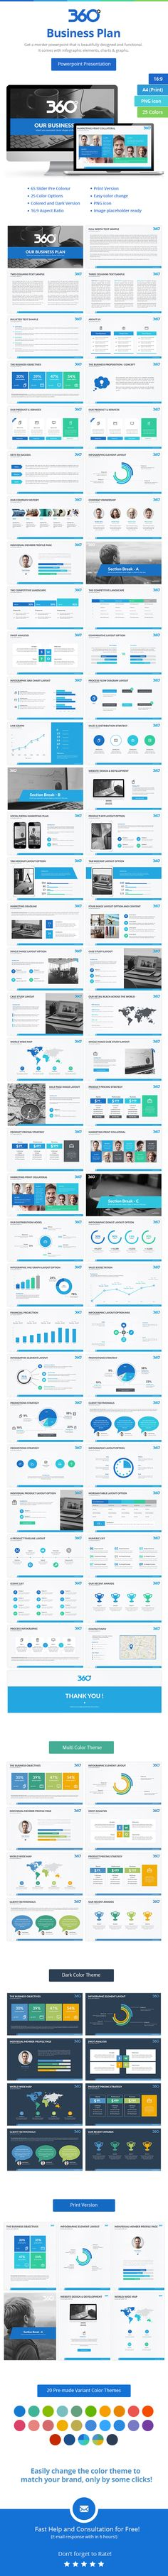 360 Business Plan Powerpoint Template. Download here: http://graphicriver.net/item/360-business-plan-powerpoint-template/14878108?ref=ksioks